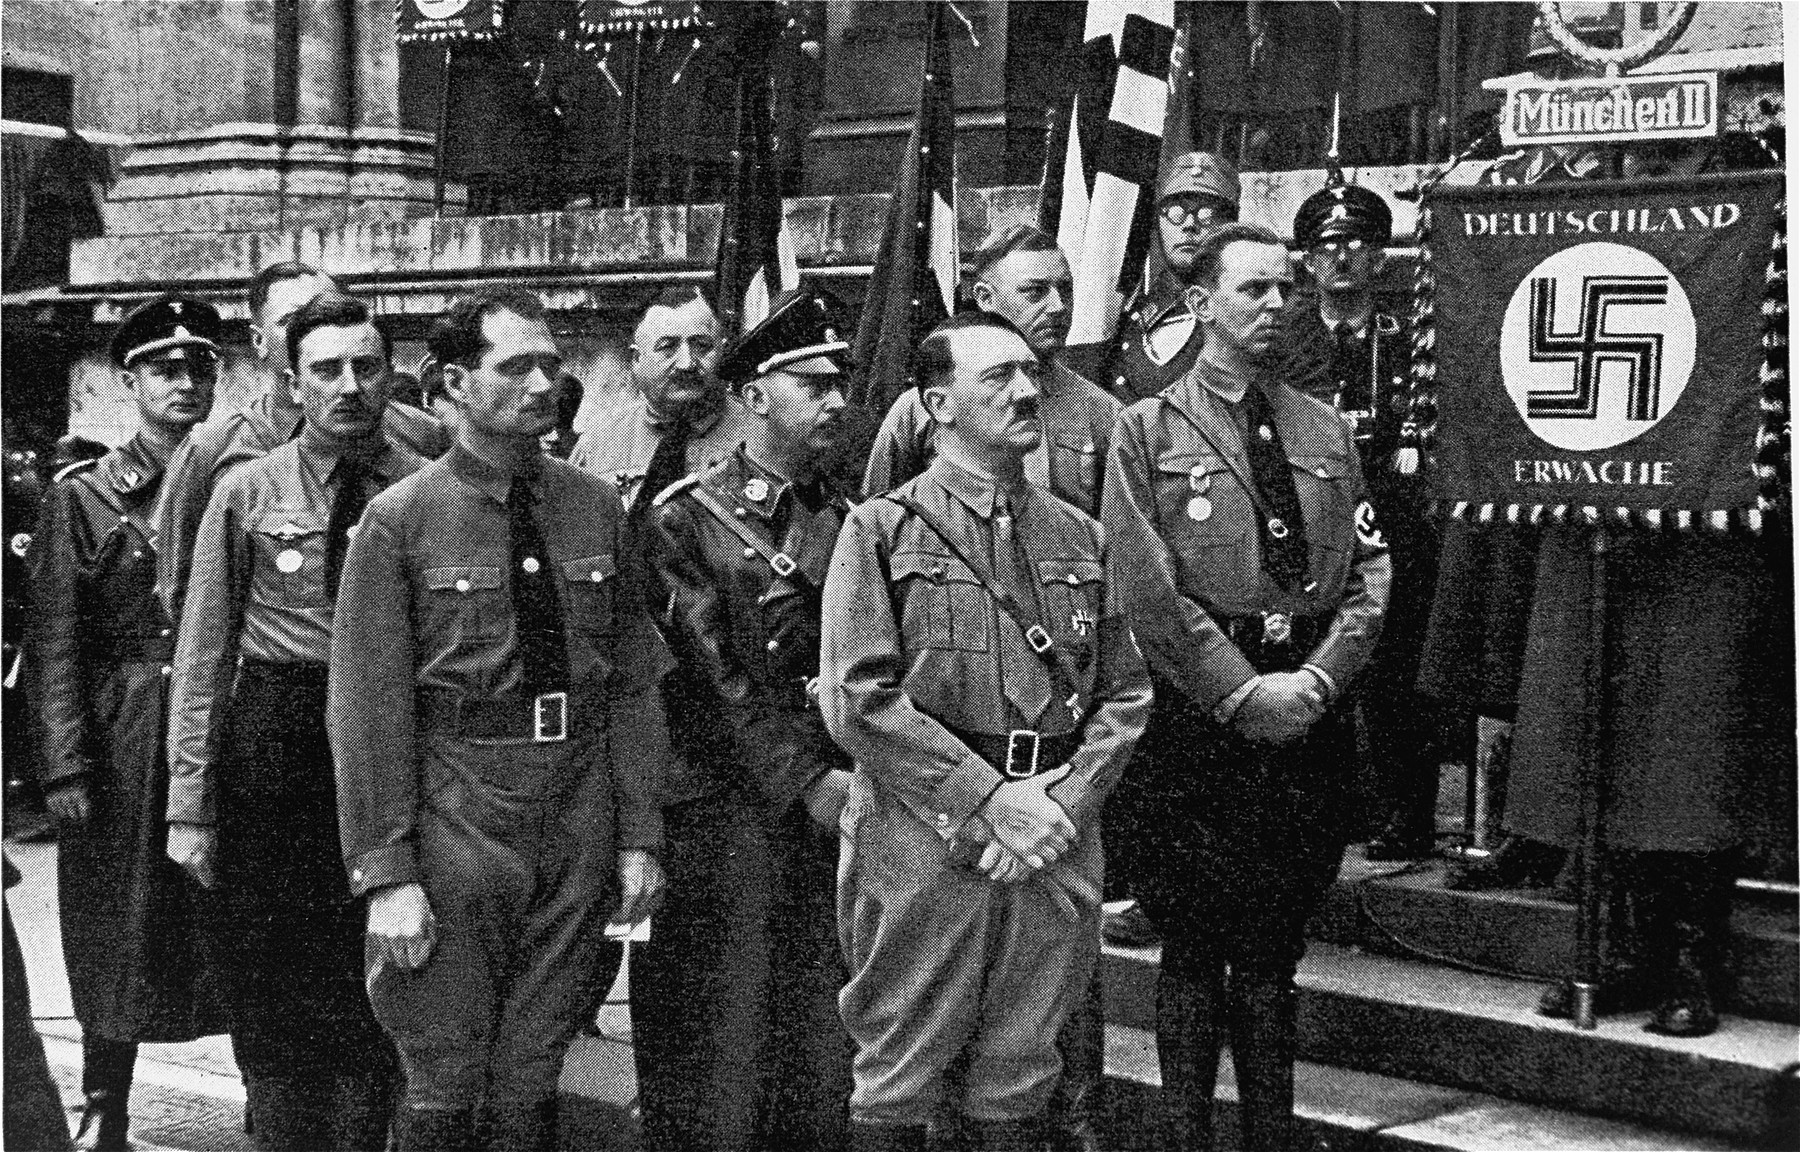 """Hitler, Hess, Himmler and others in front of the """"Feldherrnhalle"""" during a ceremony commemorating the eleventh anniversary of the """"Beer Hall Putsch""""."""